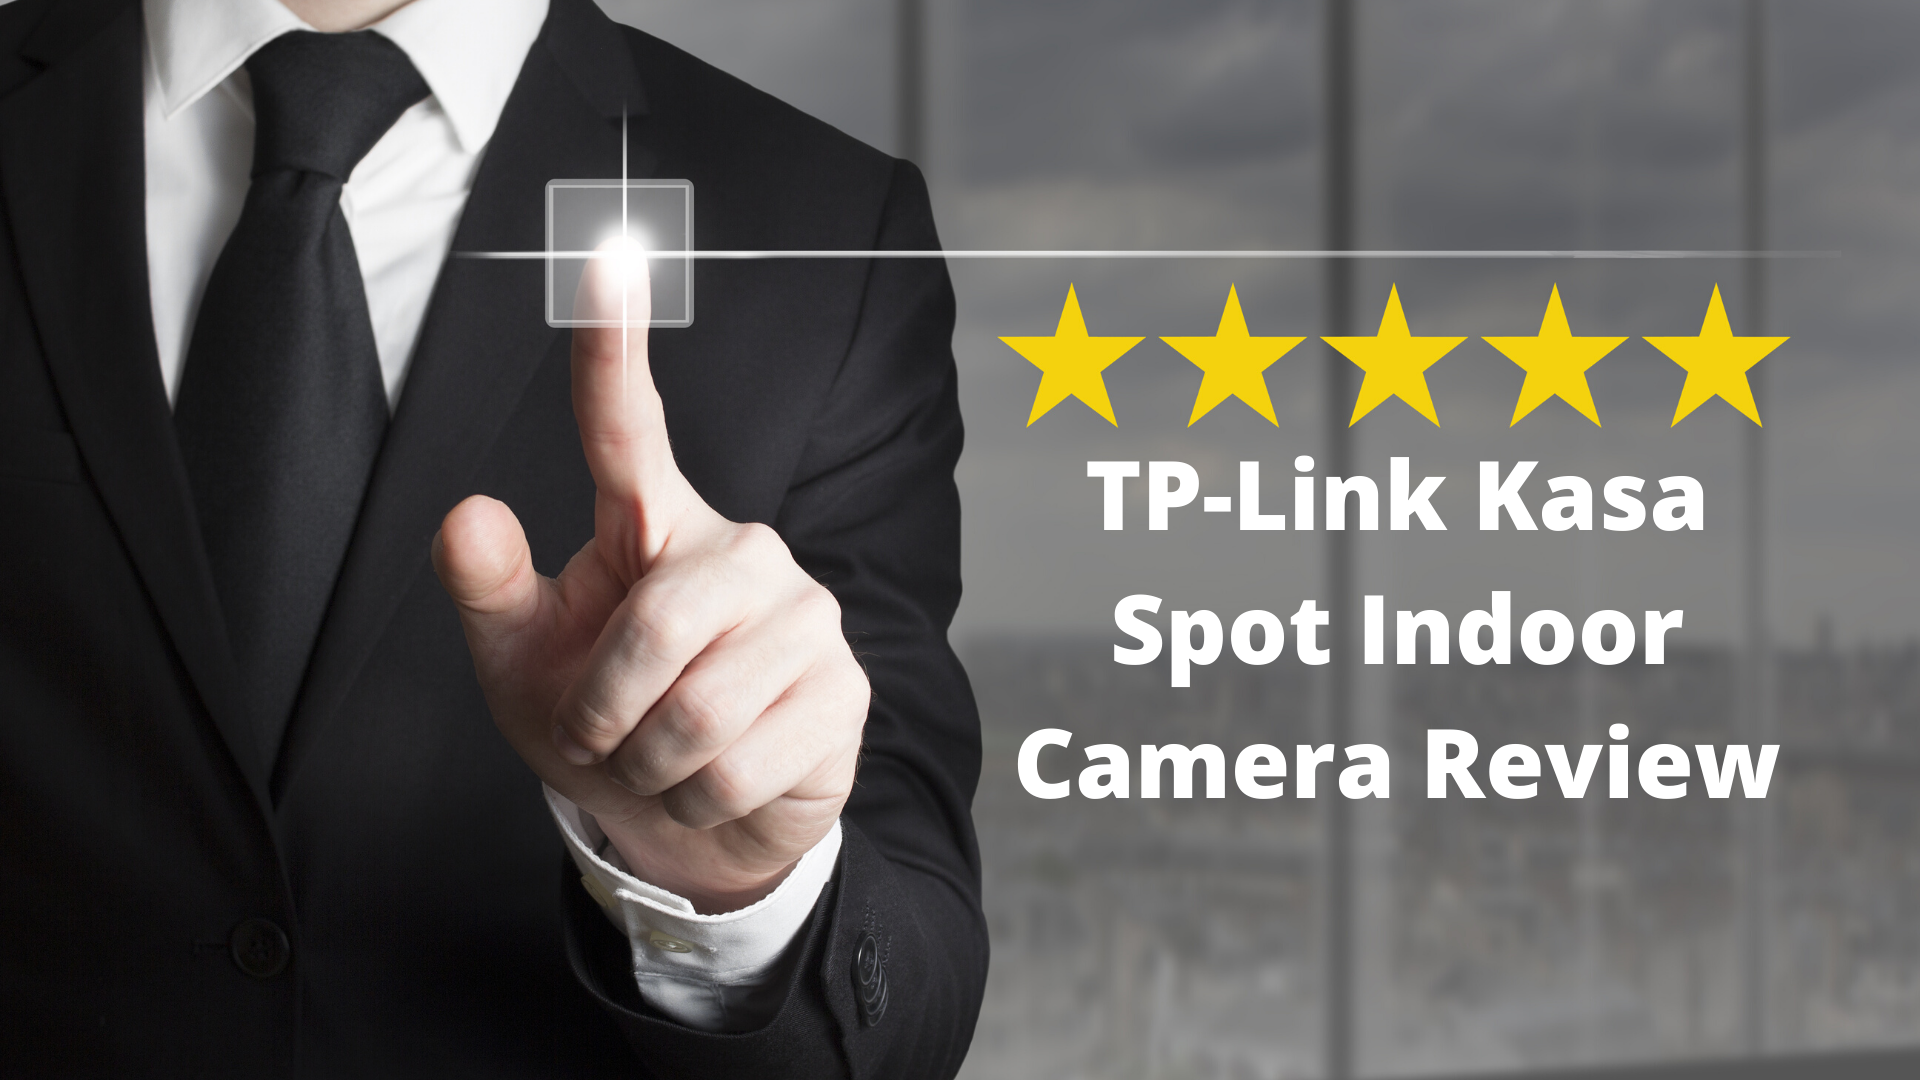 TP-Link Kasa Spot Indoor Camera Review